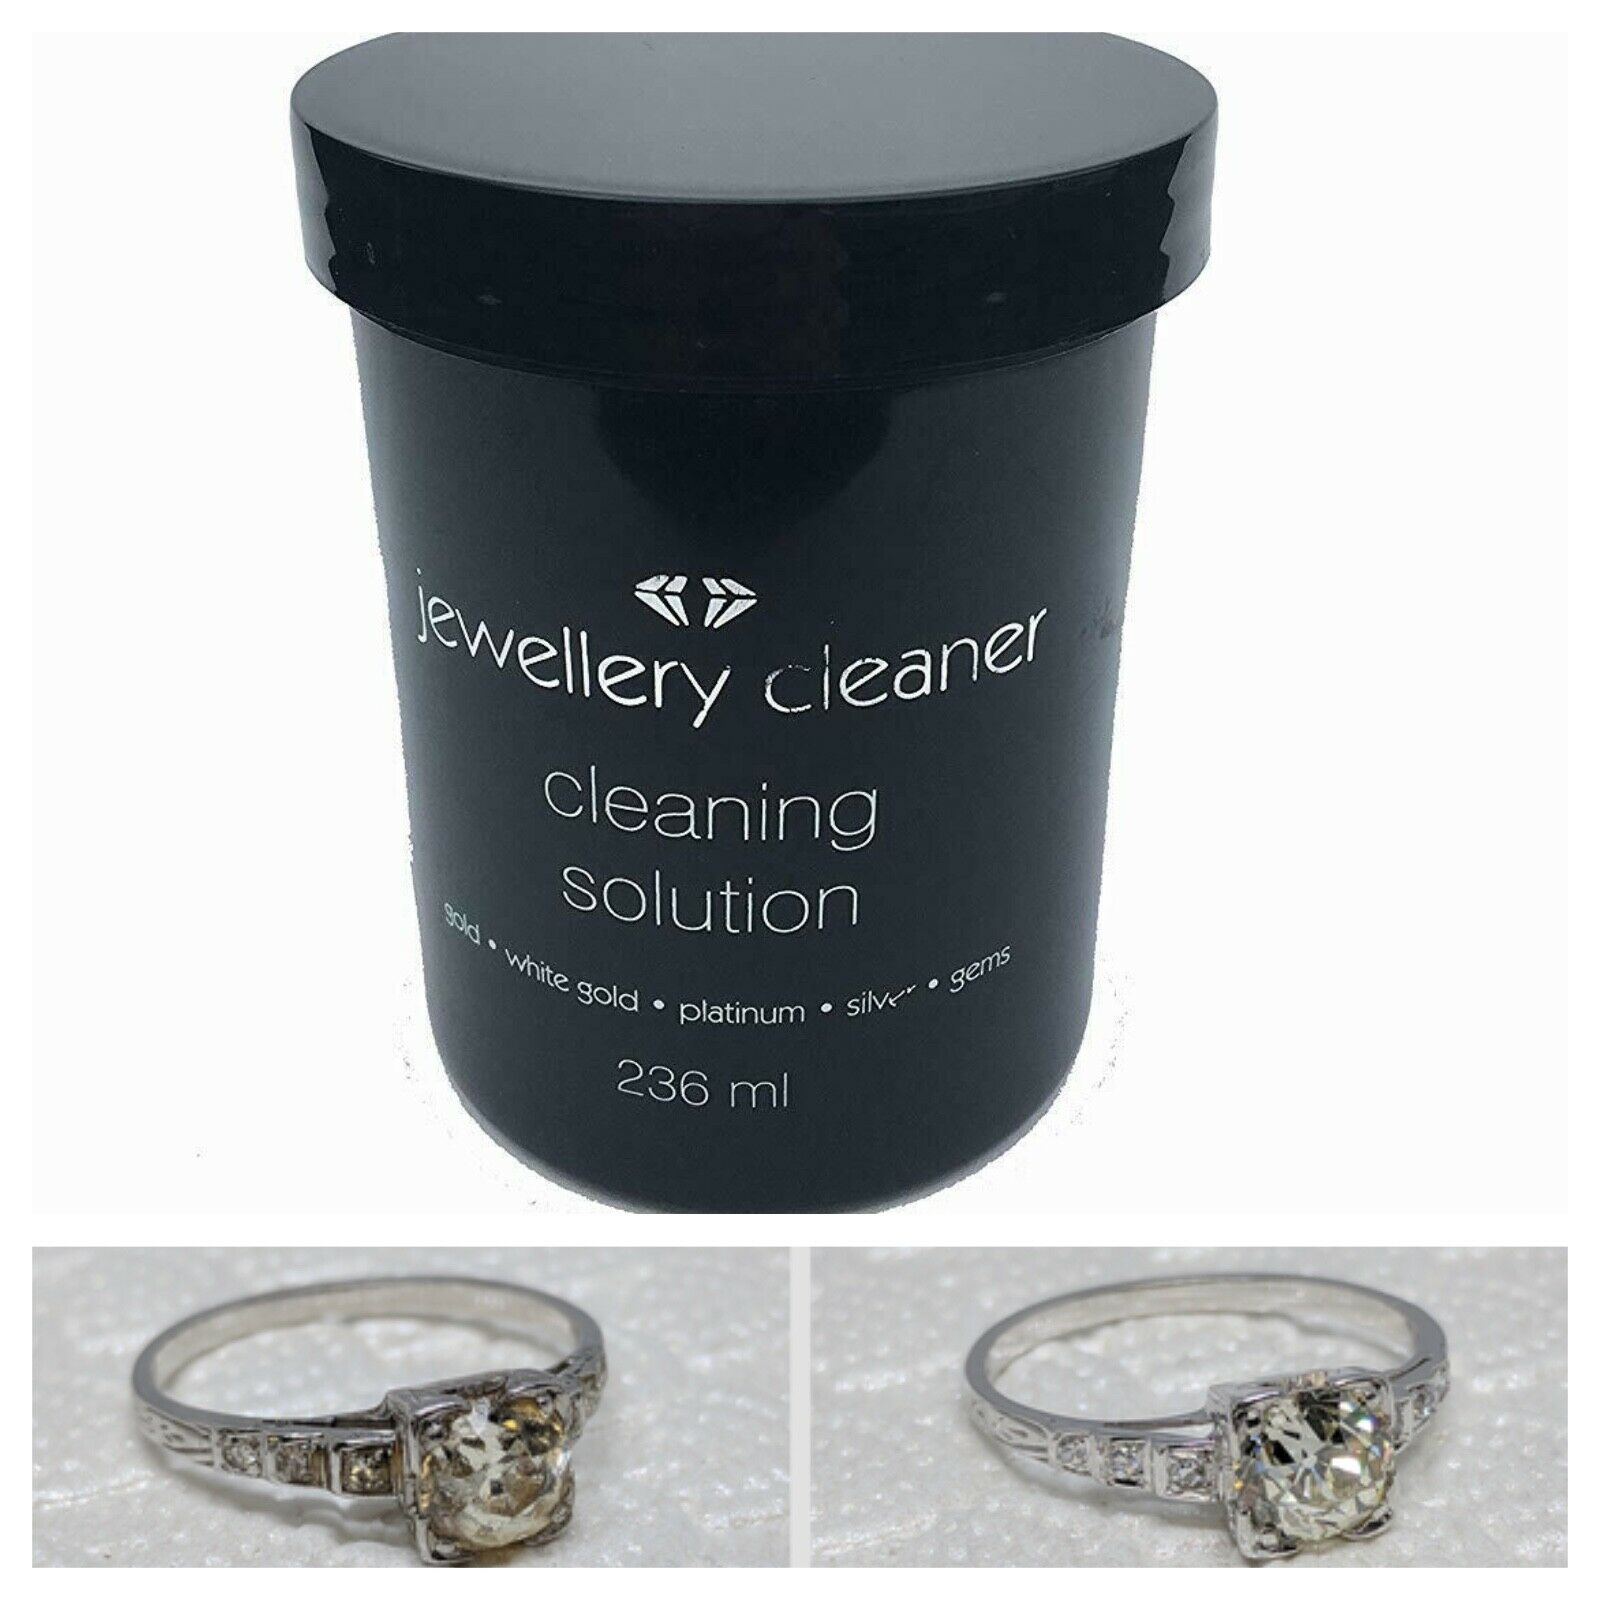 Jewellery - Jewellery Cleaner Liquid Cleaning Solution Fluid Gold Silver Gems Platinum 236ml